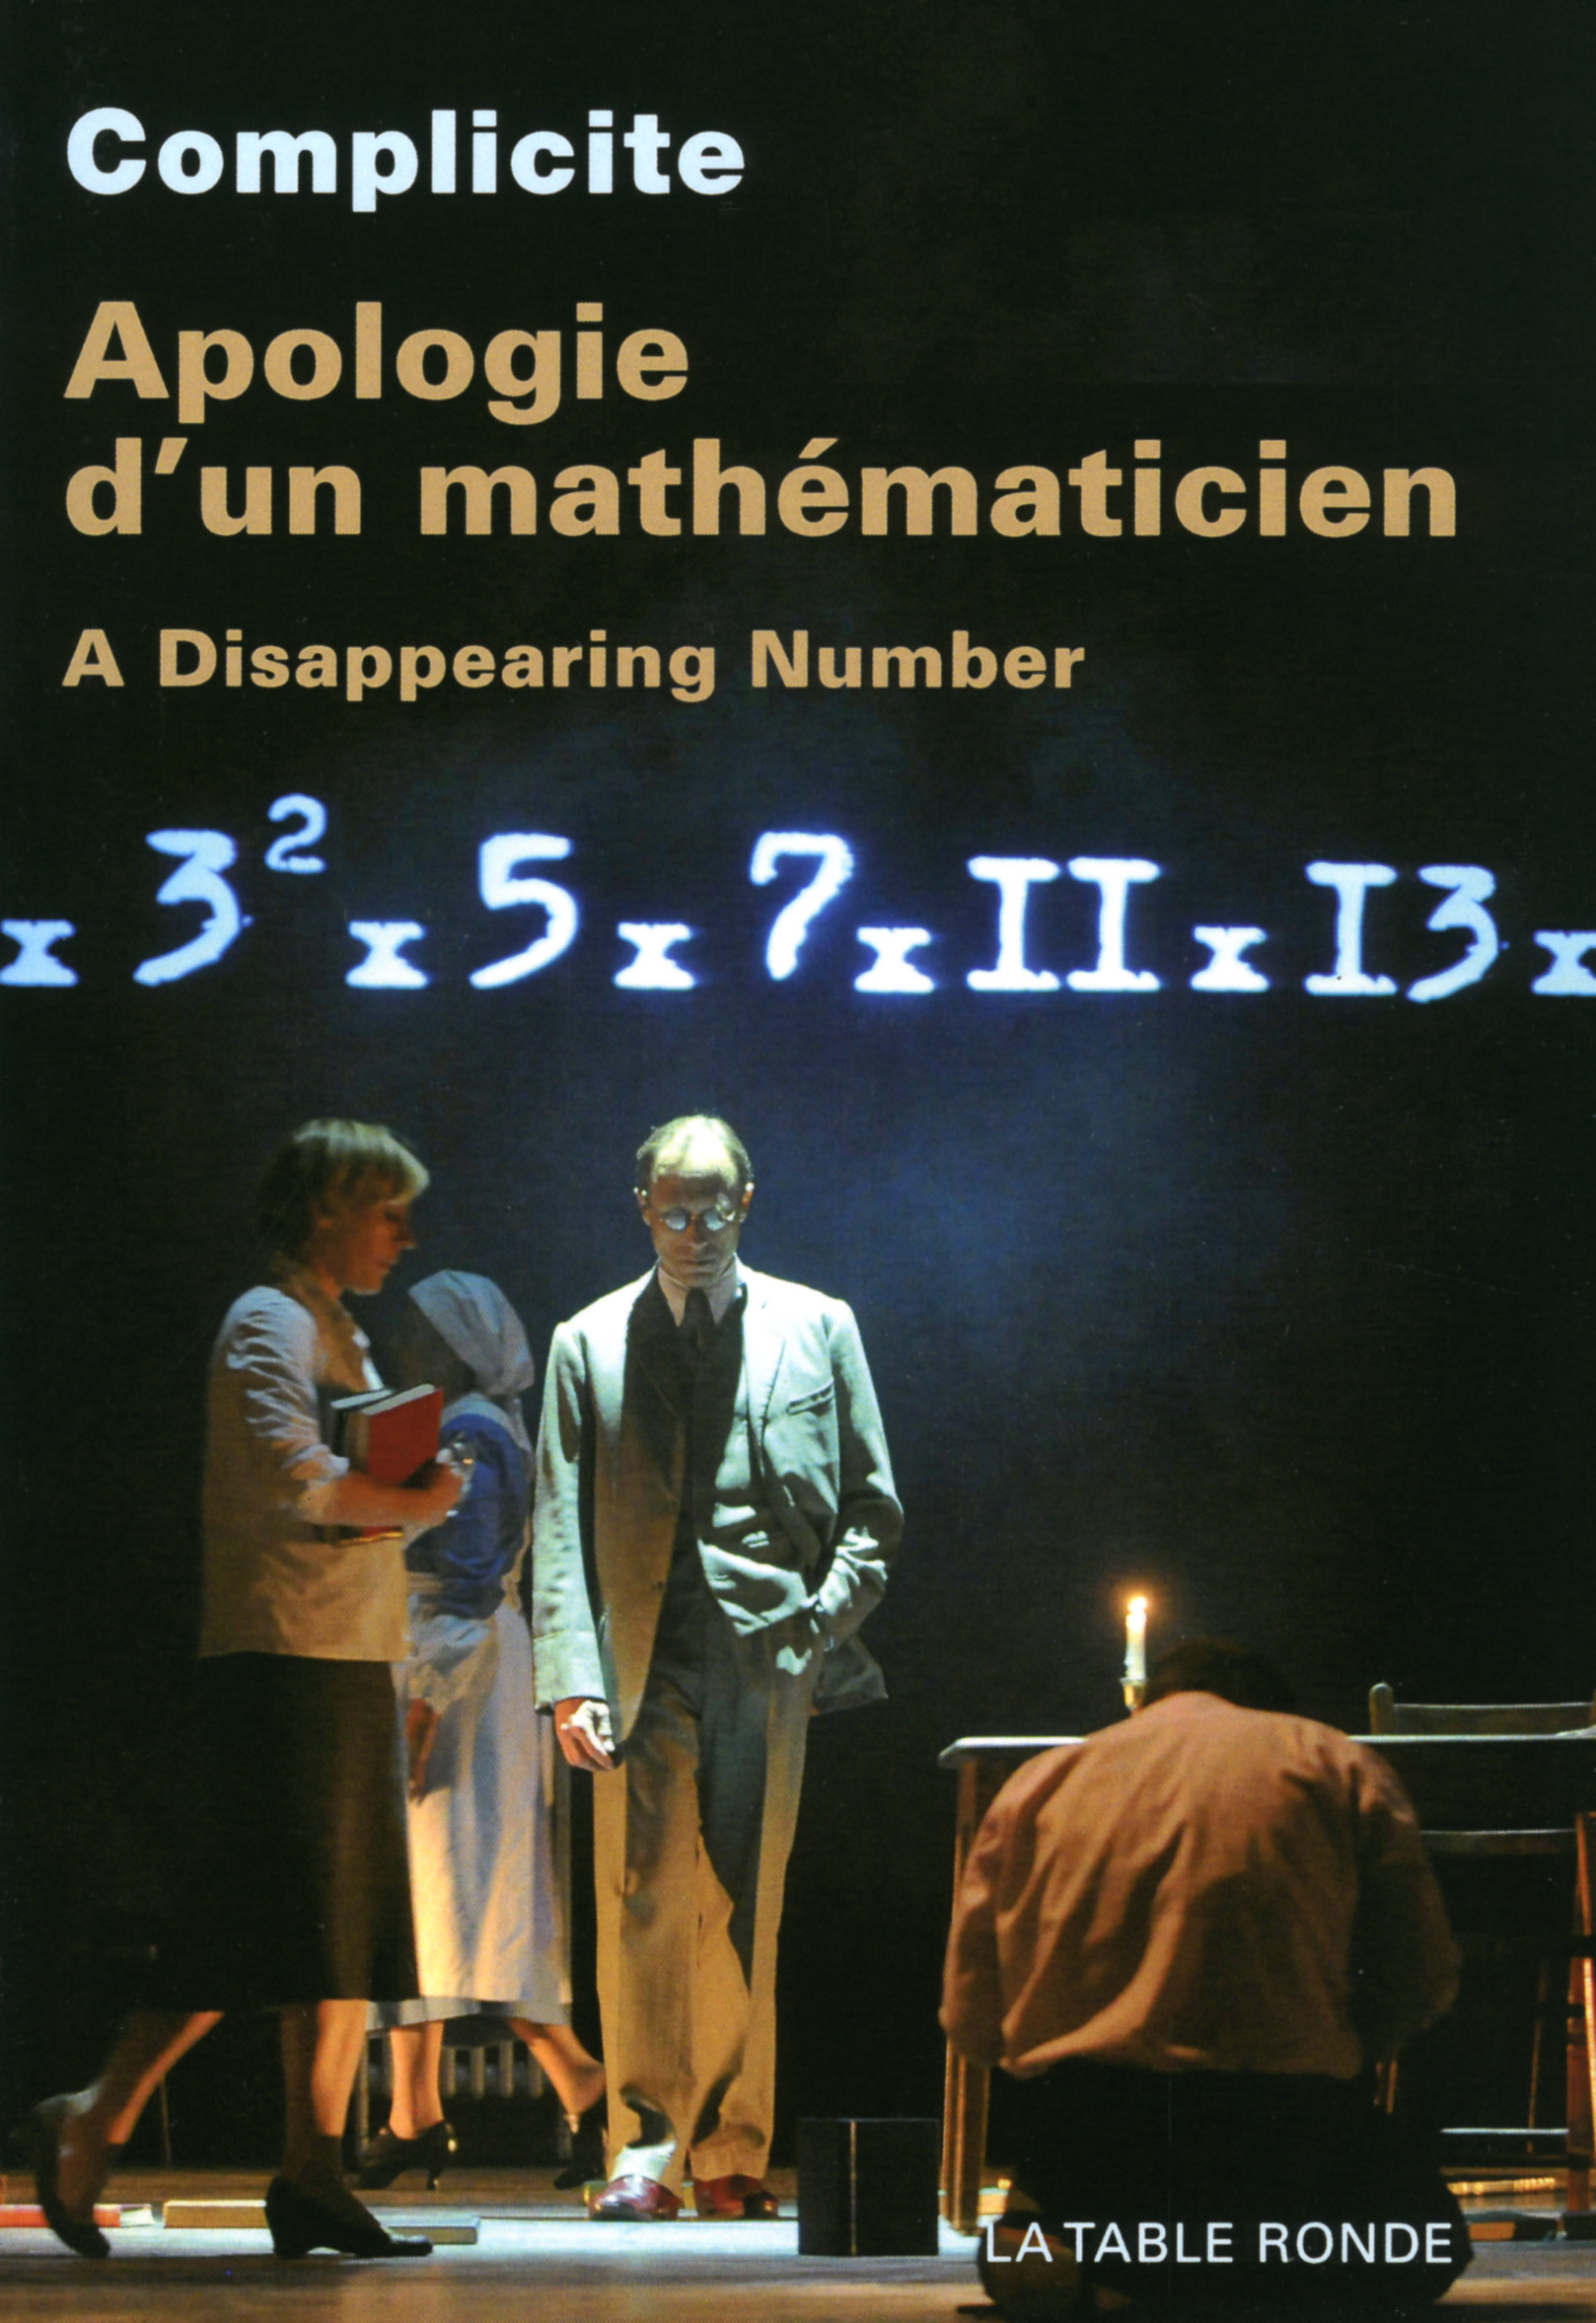 APOLOGIE D'UN MATHEMATICIEN